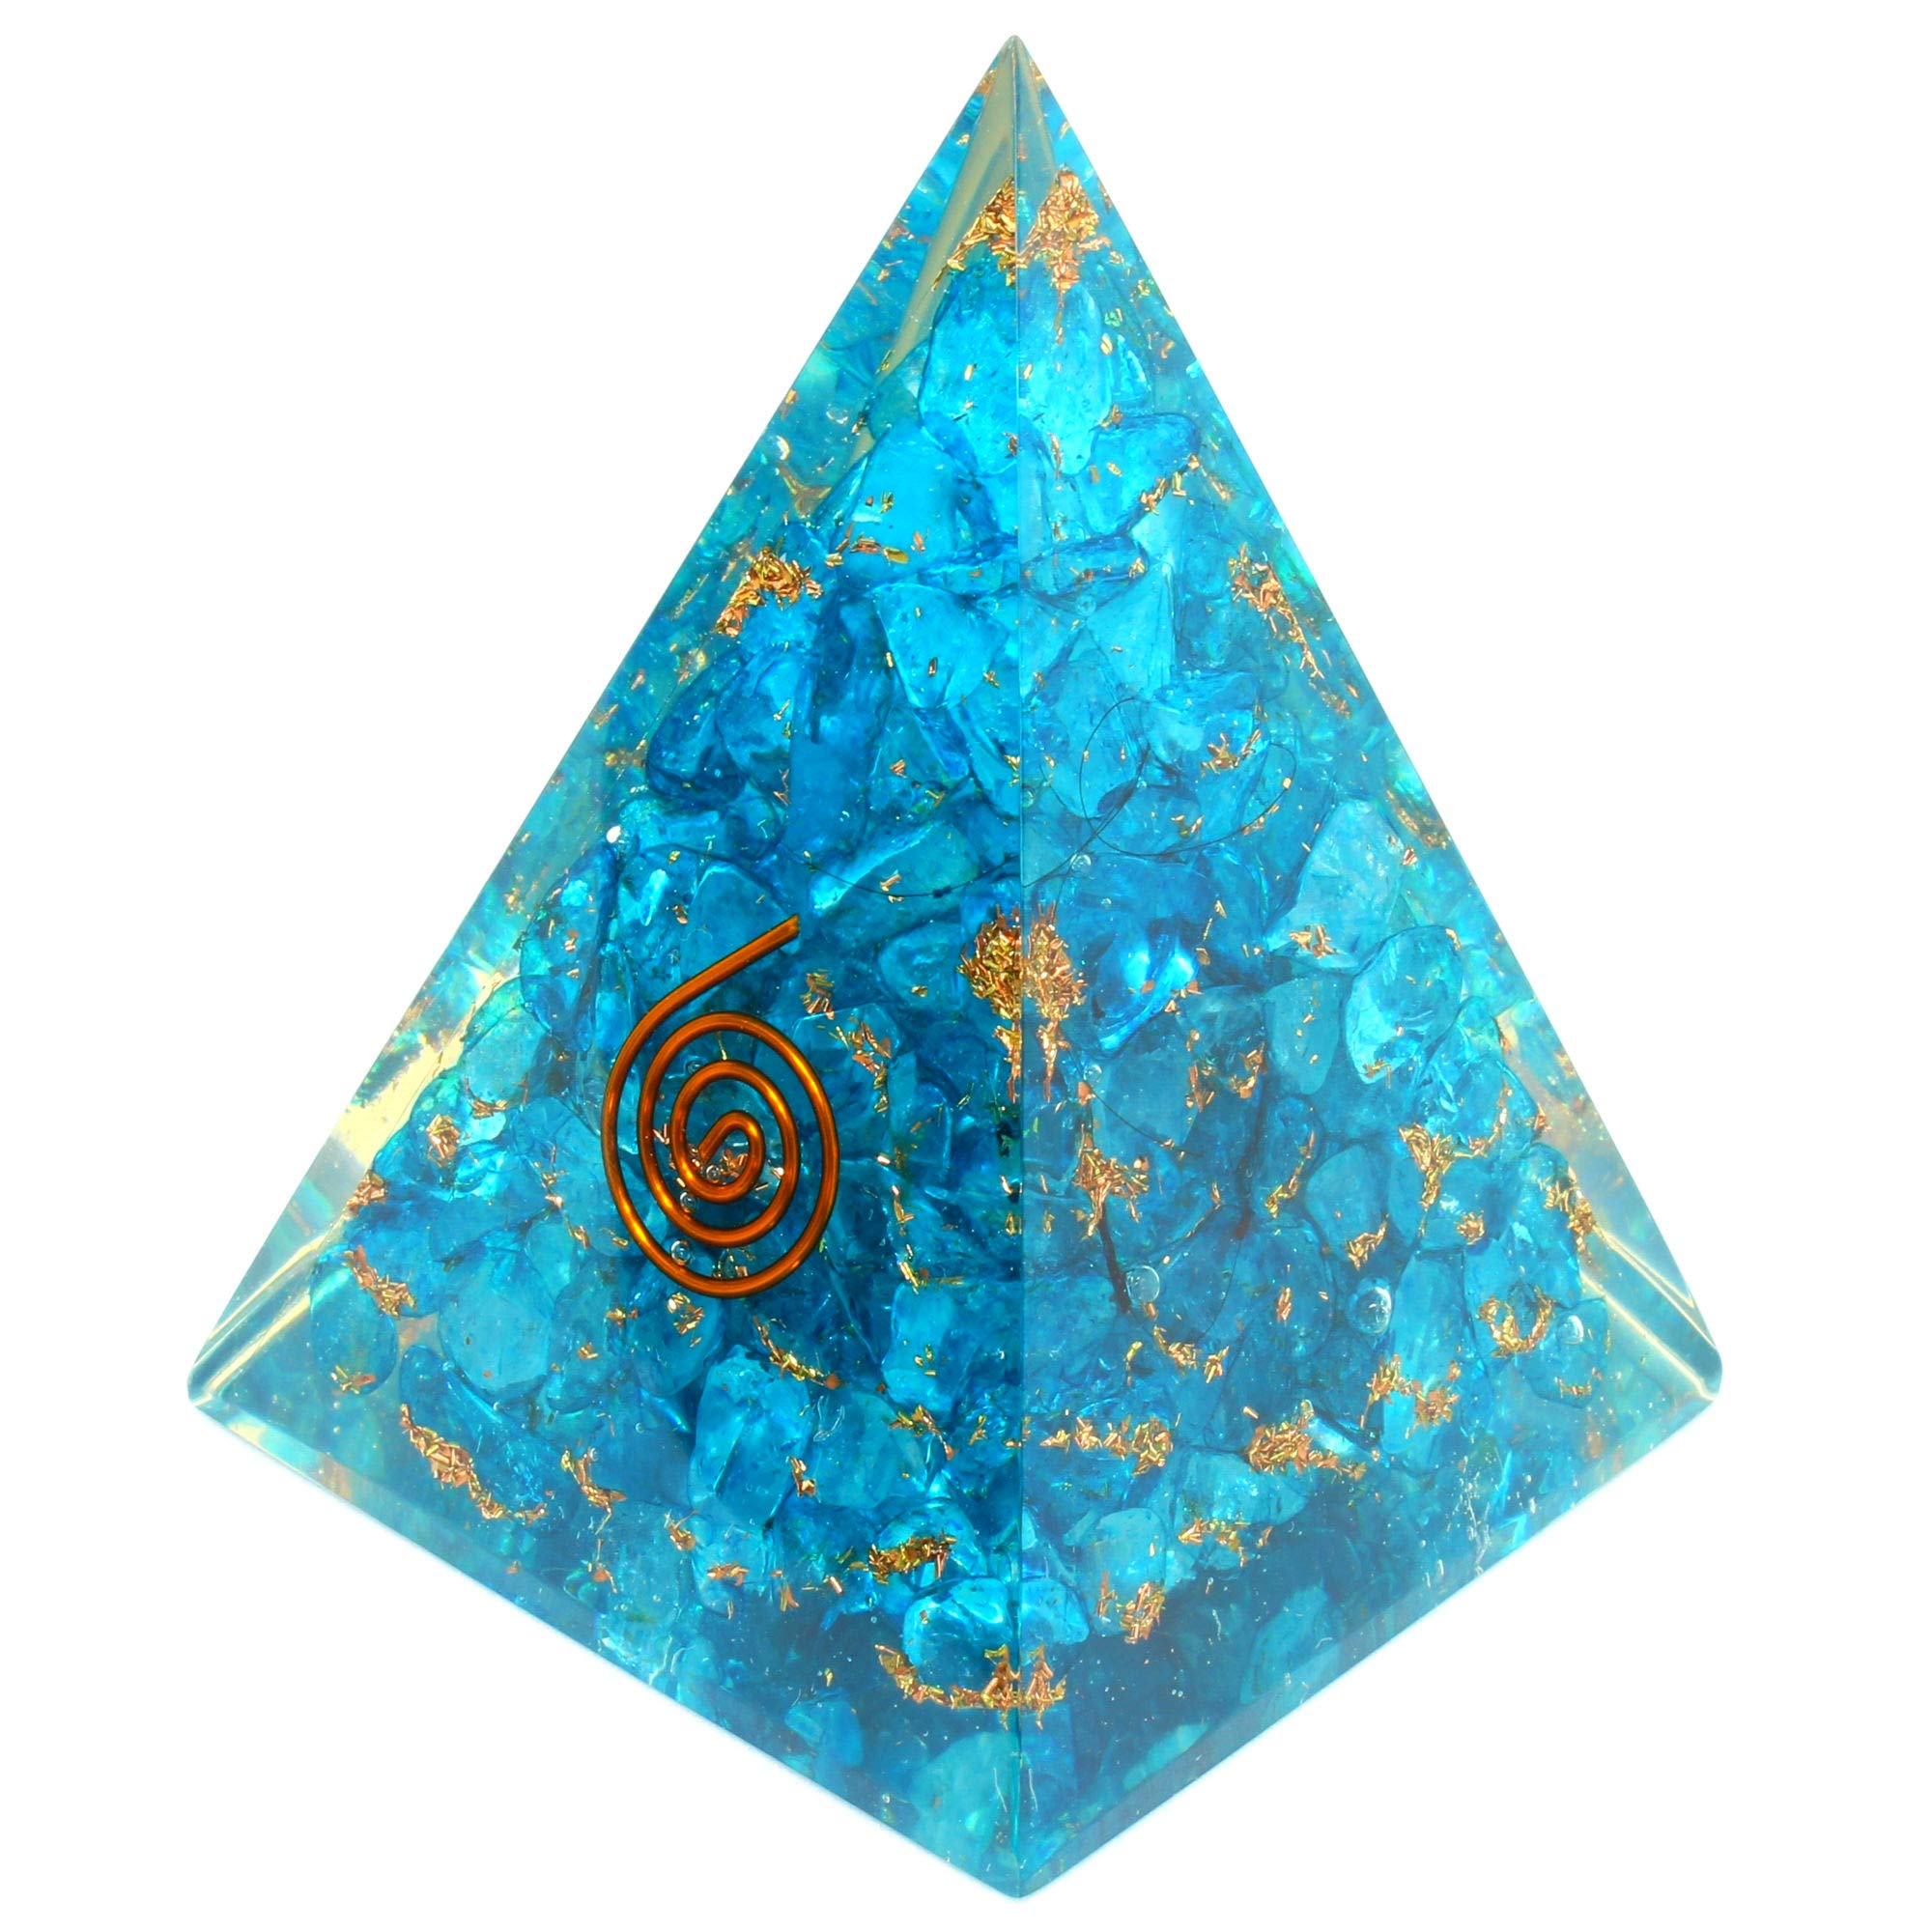 Orgone Pyramid with healing crystal- Aquamarine Orgone Energy Generator Nubian Pyramid for EMF Protection-chakra balancing by Orgonite Crystal